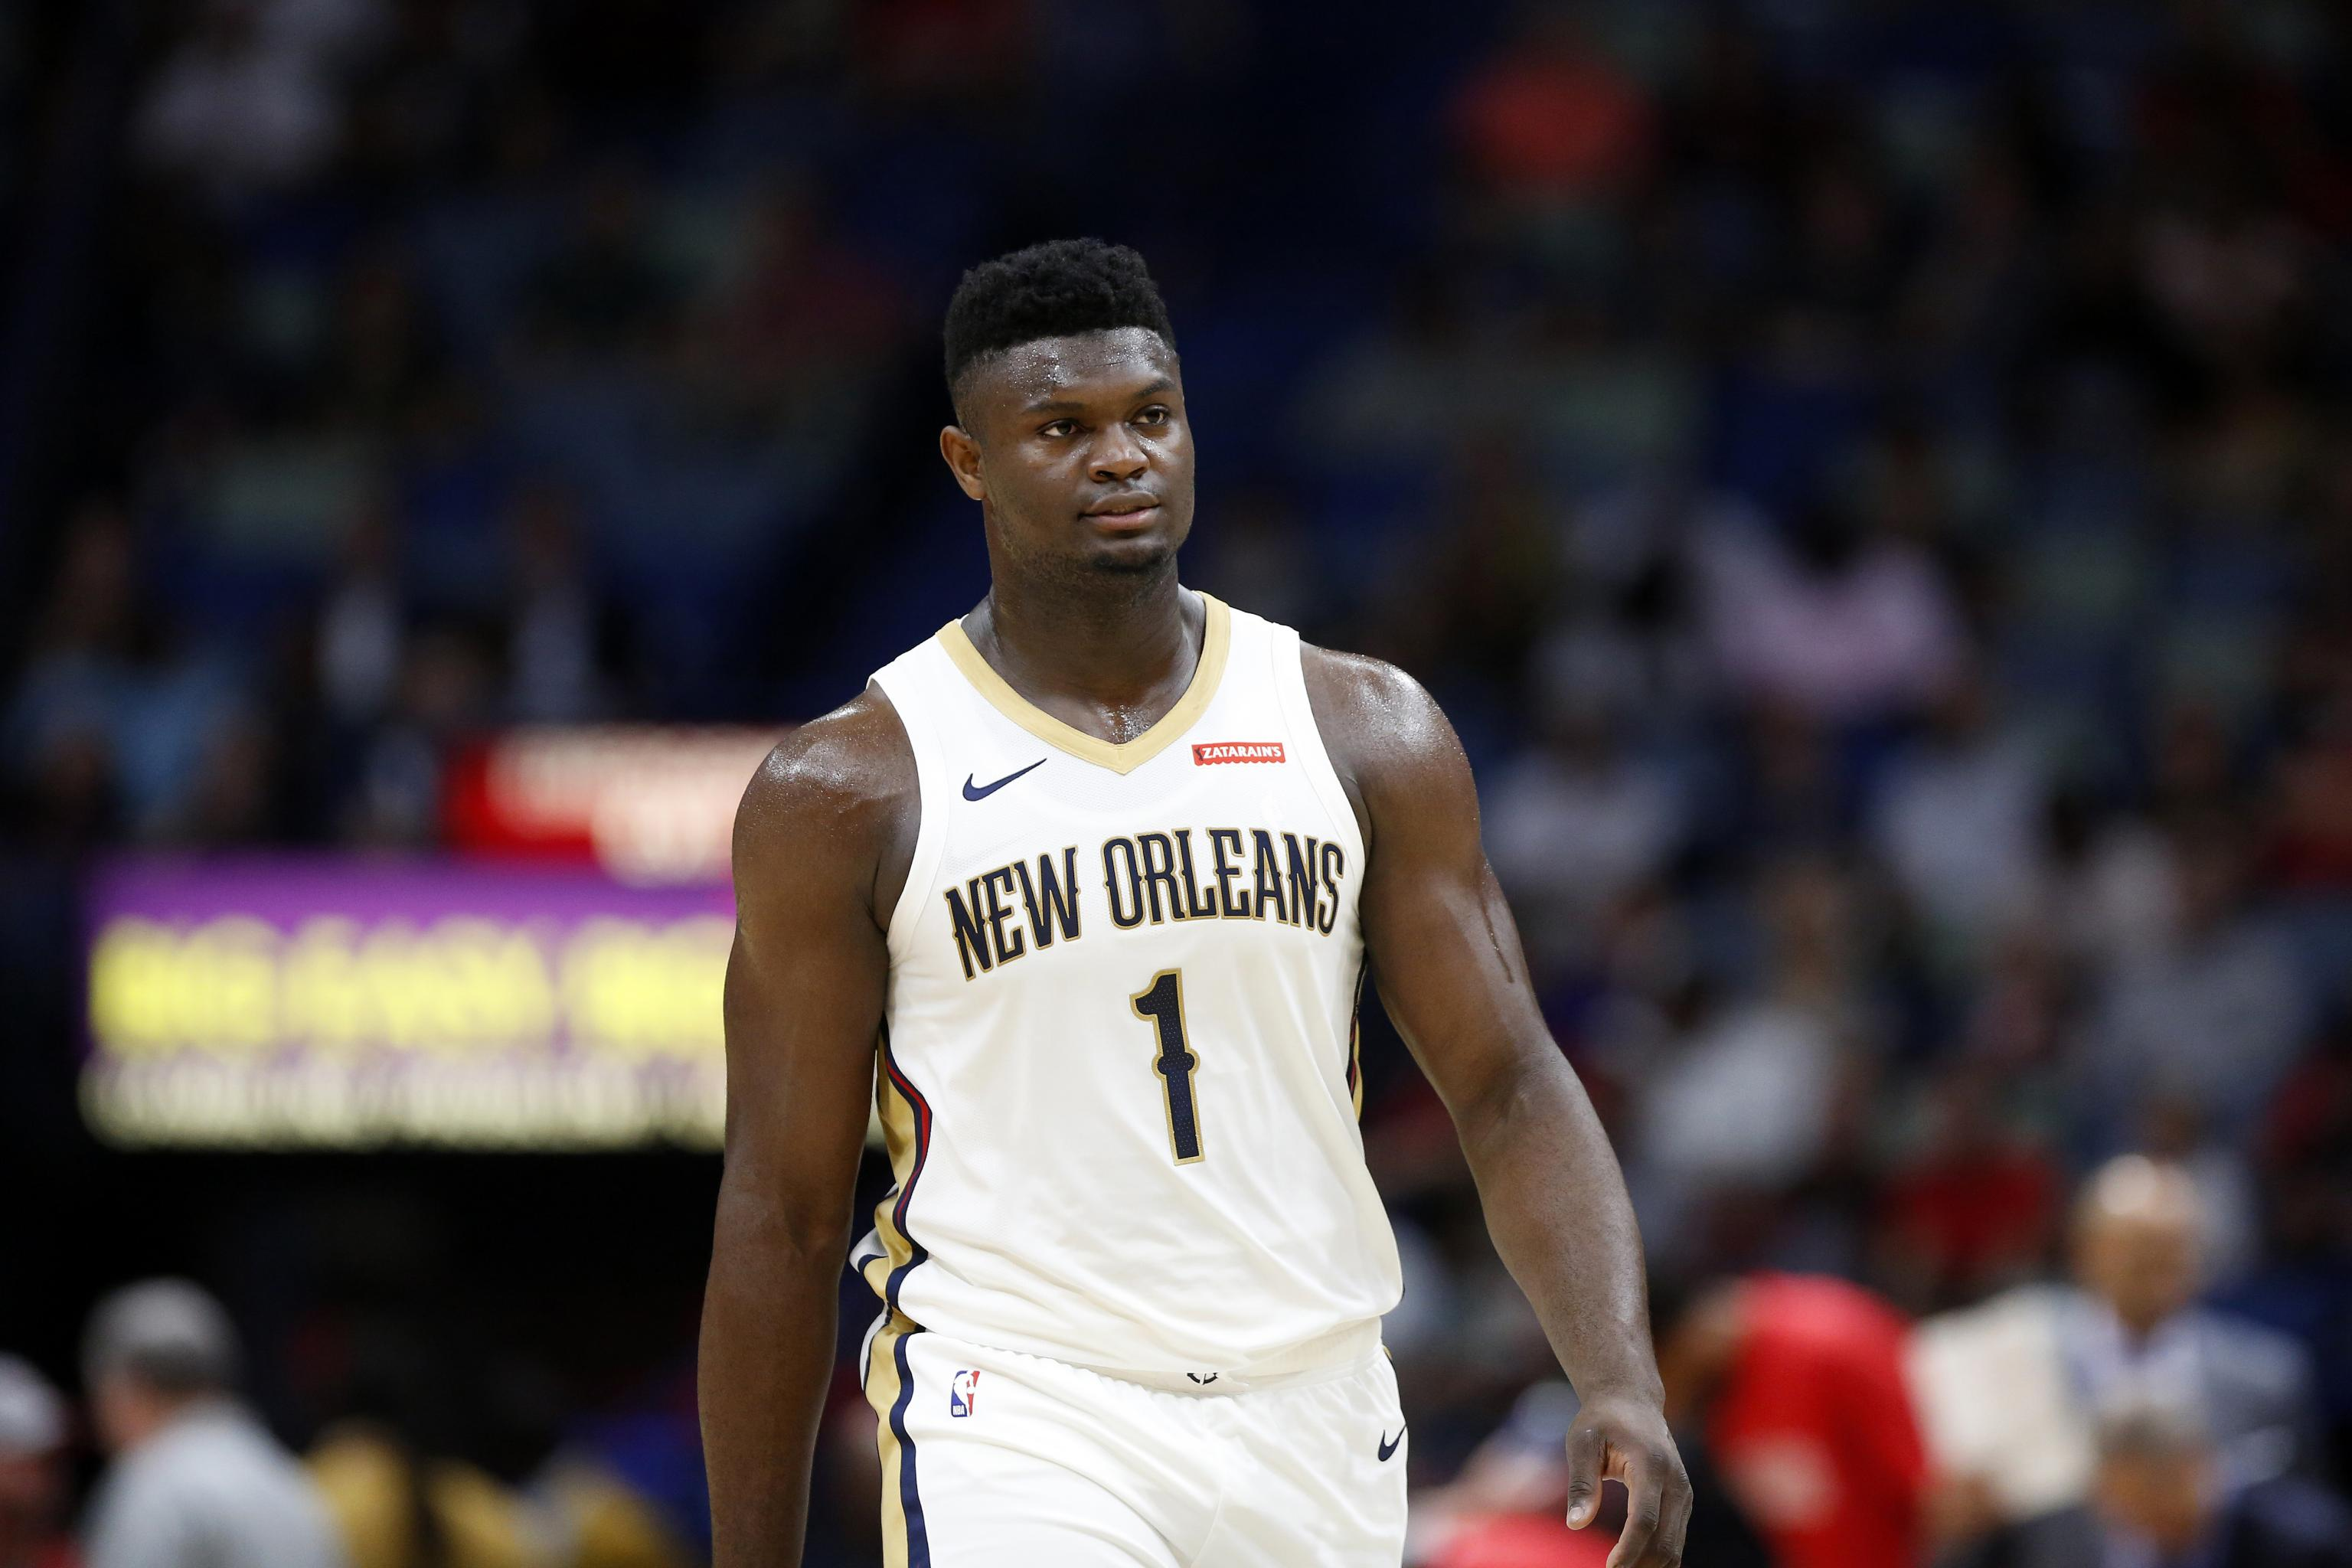 Pelicans Zion Williamson Underwent Surgery On Knee Injury Will Miss 6 8 Weeks Bleacher Report Latest News Videos And Highlights